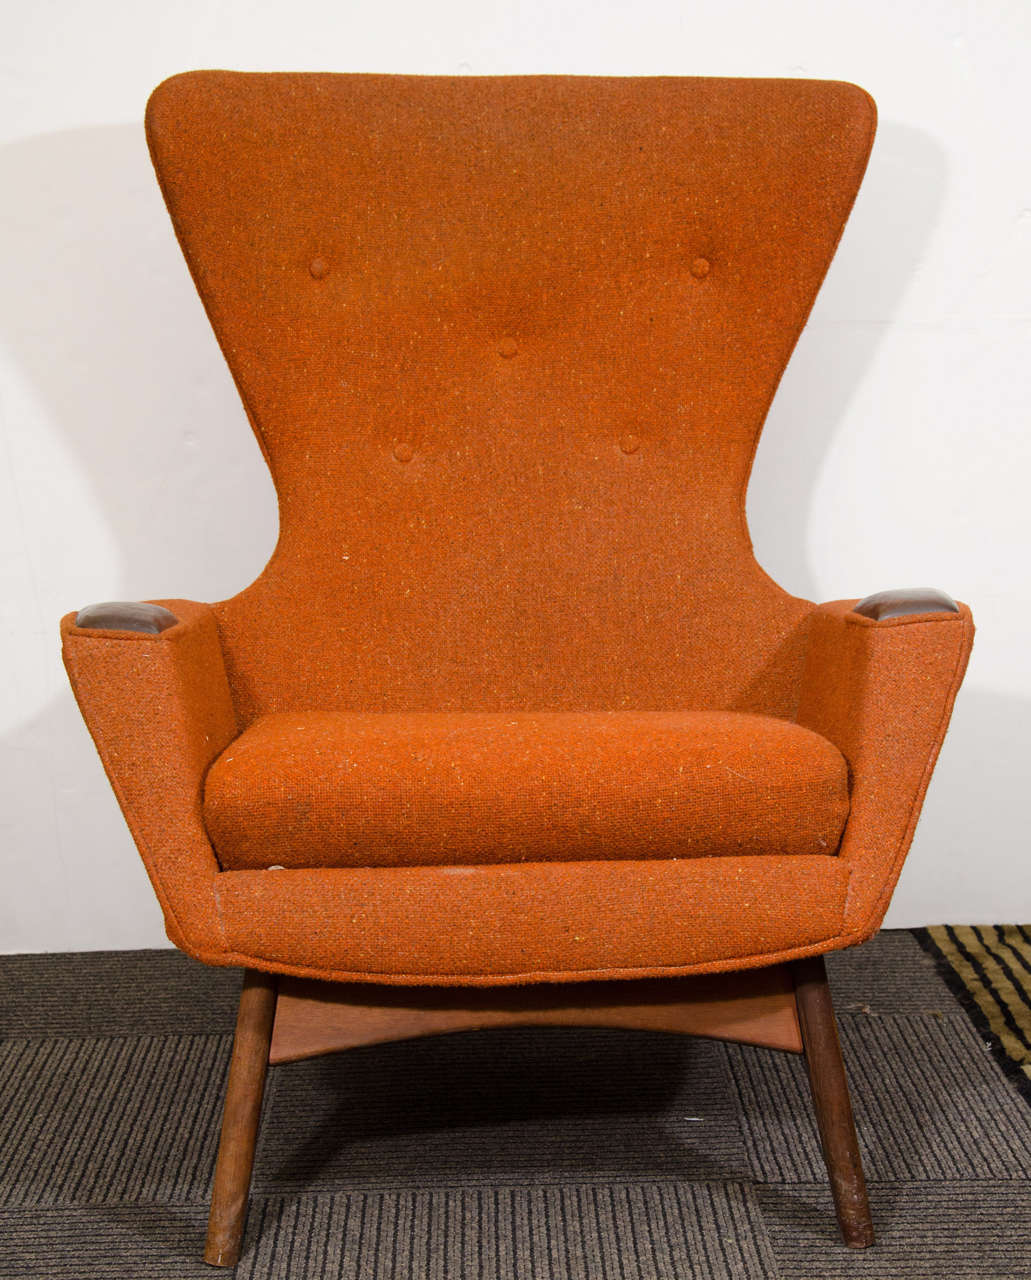 High Back Wing Chair Midcentury High Back Wing Chair By Adrian Pearsall At 1stdibs